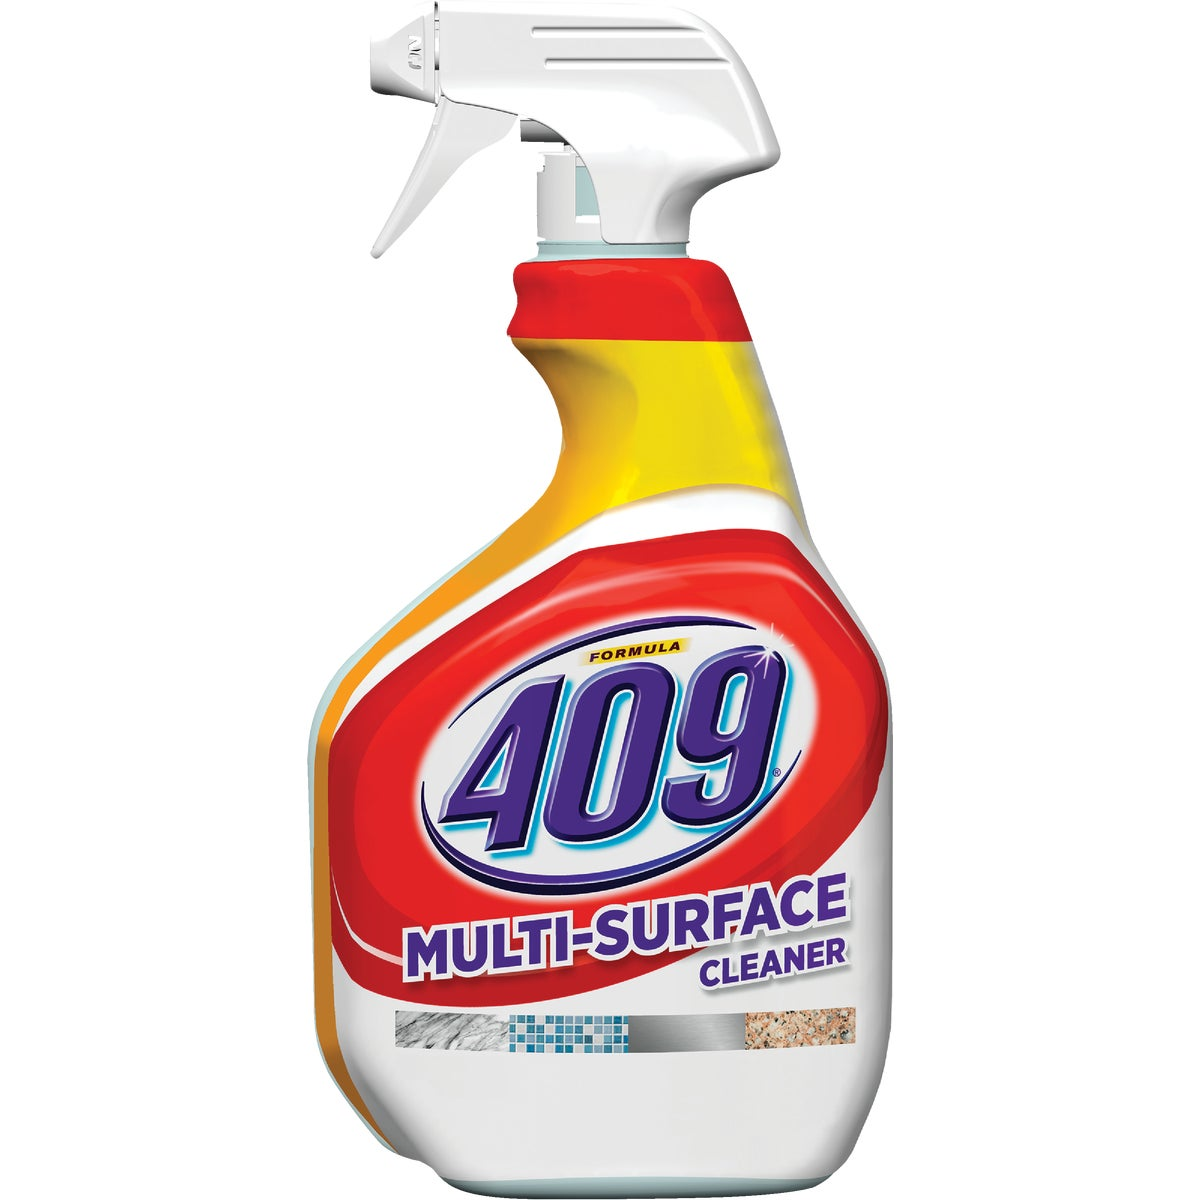 REGULAR 409 CLEANER - 00889 by Clorox/home Cleaning